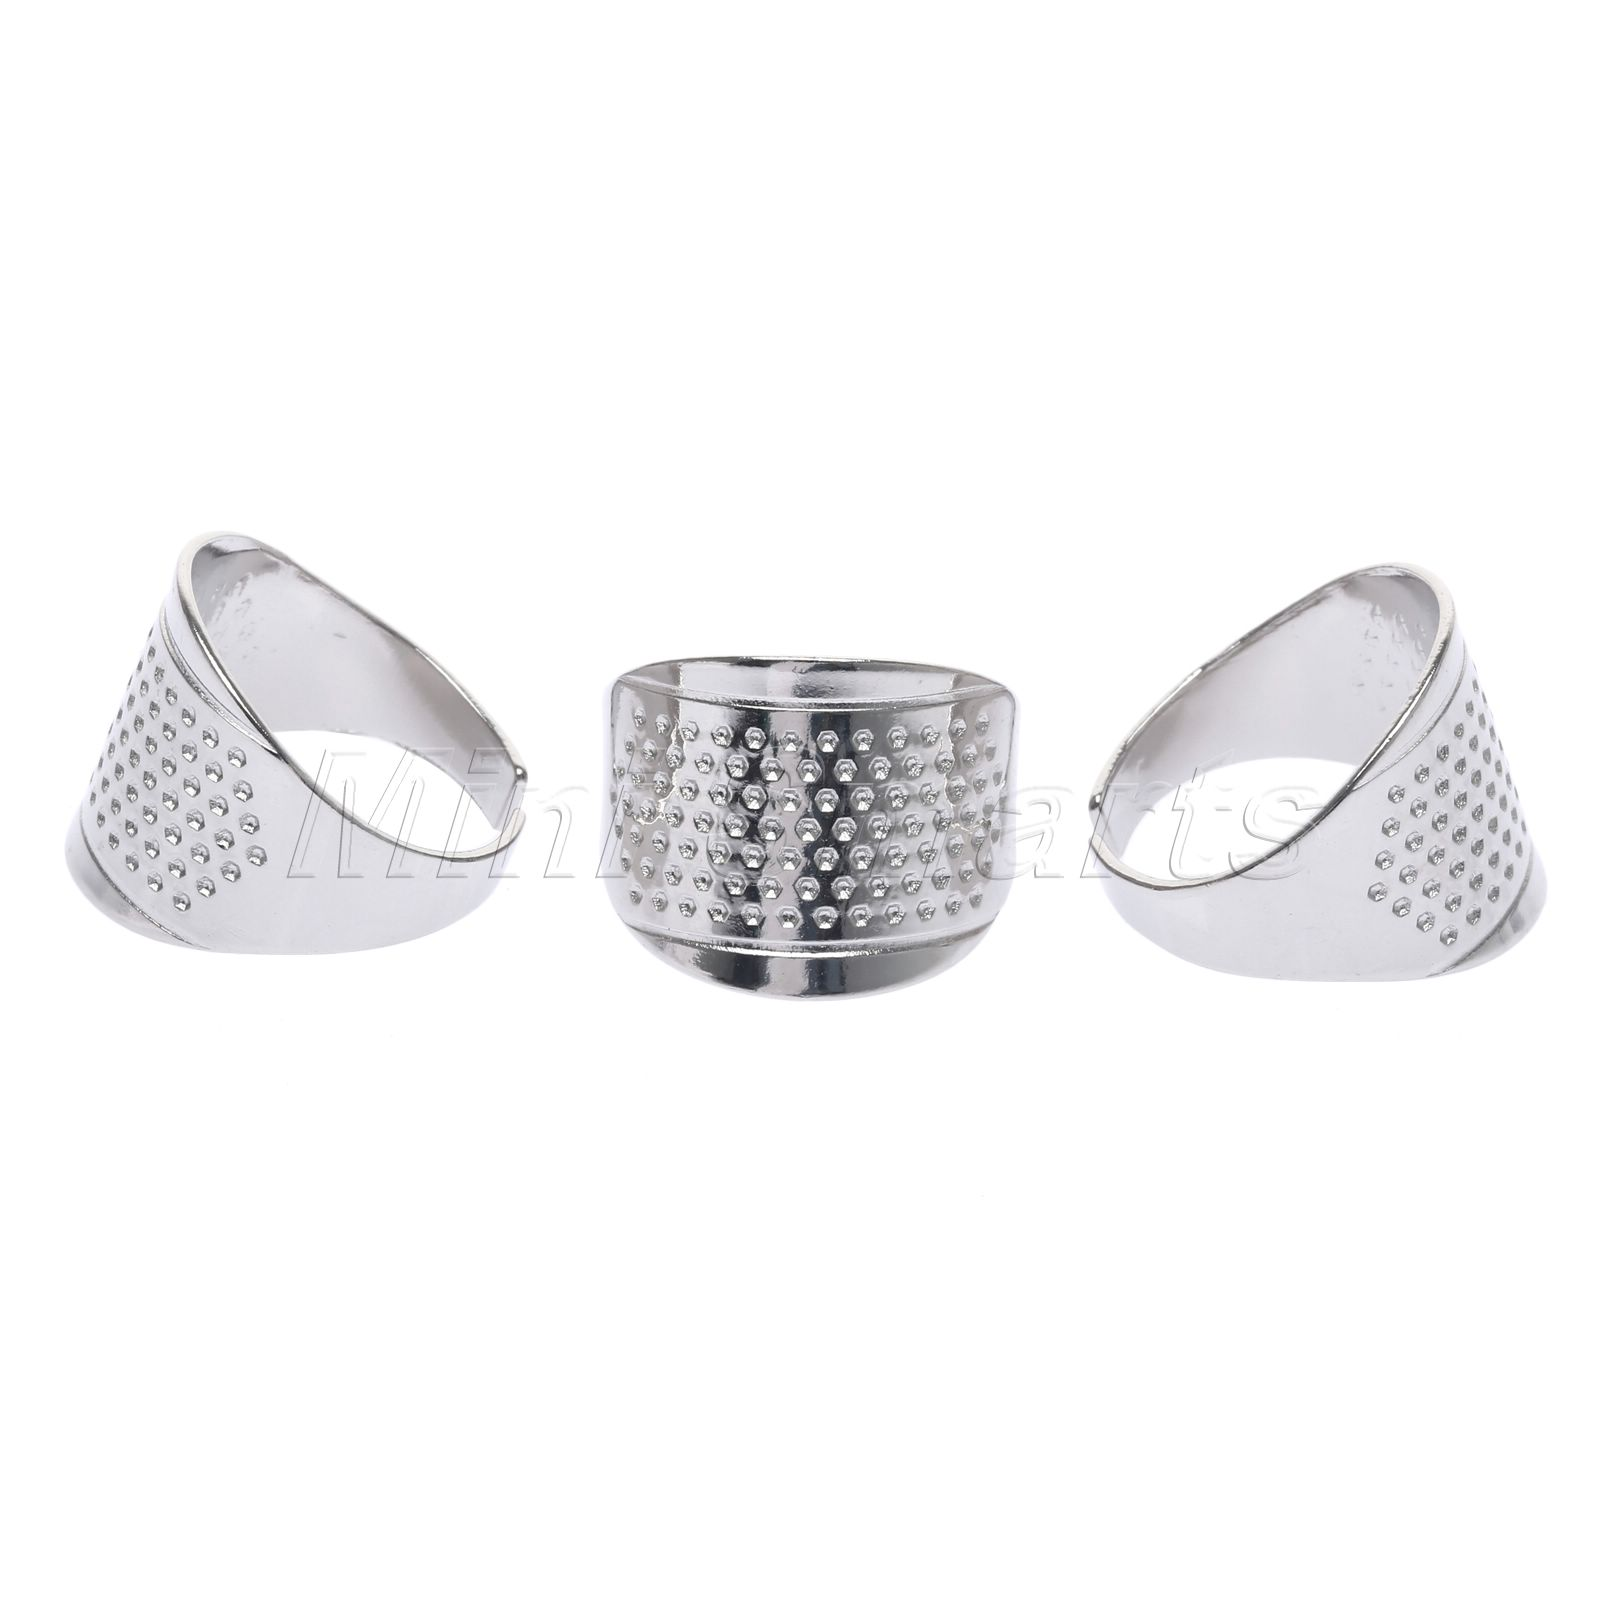 3X plastic sewing thimble ring with blade finger thimble thread cutter DIY tool